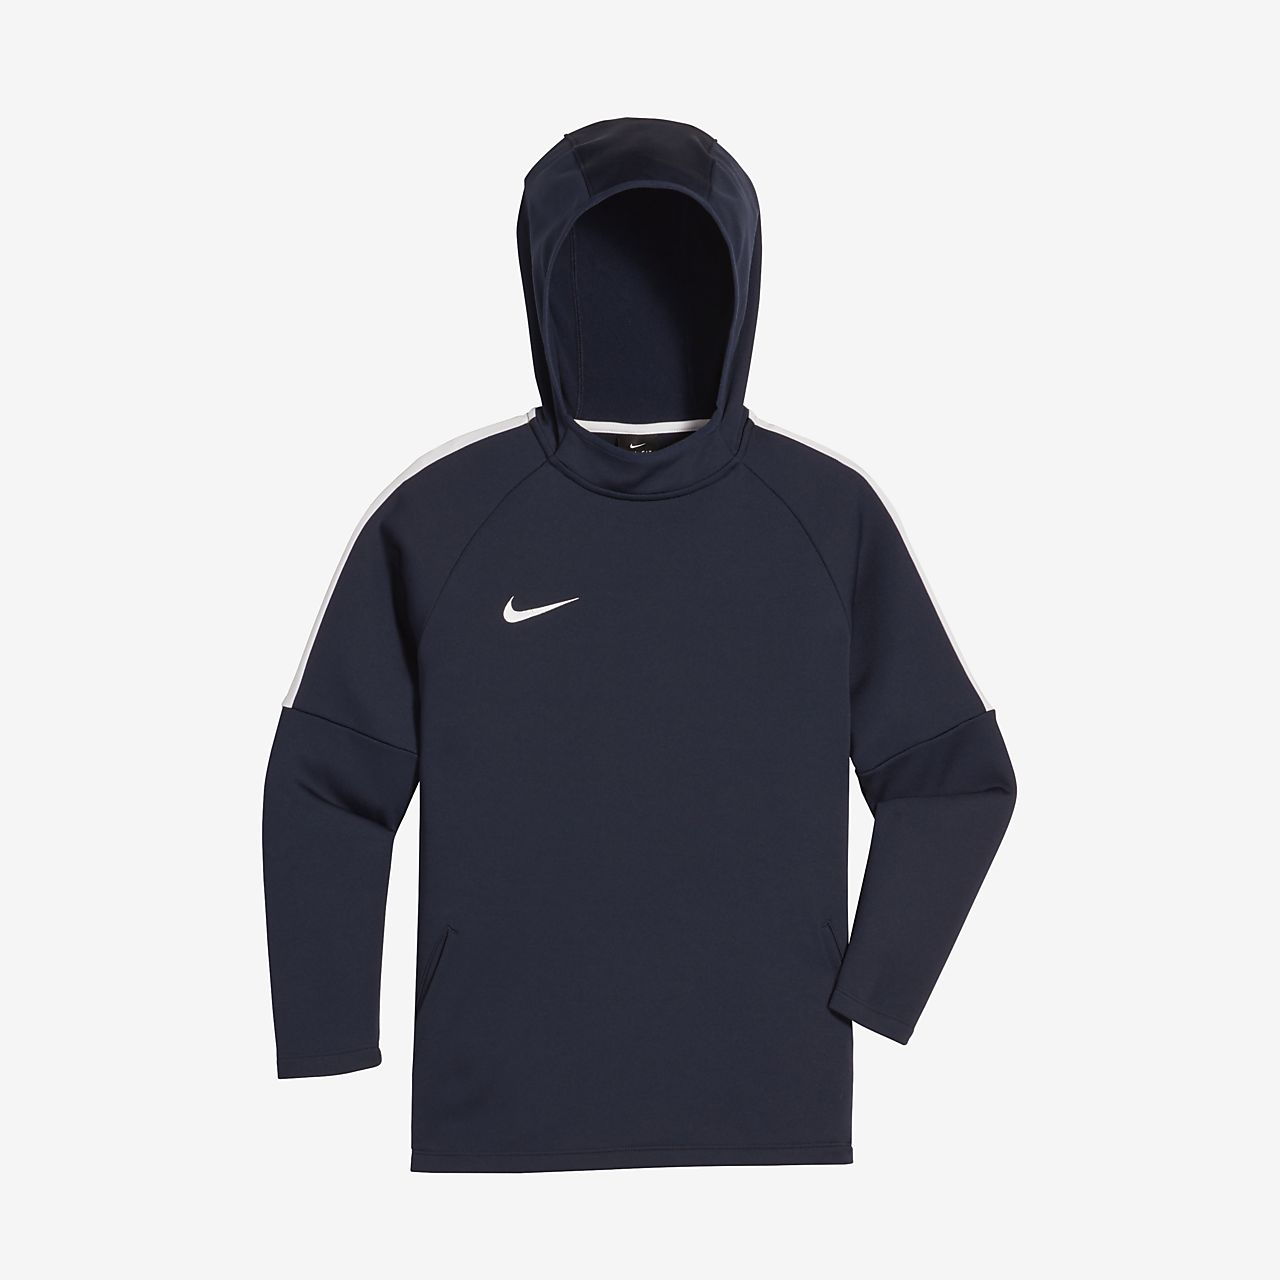 Nike Dri-FIT Academy Older Kids' (Boys') Football Hoodie